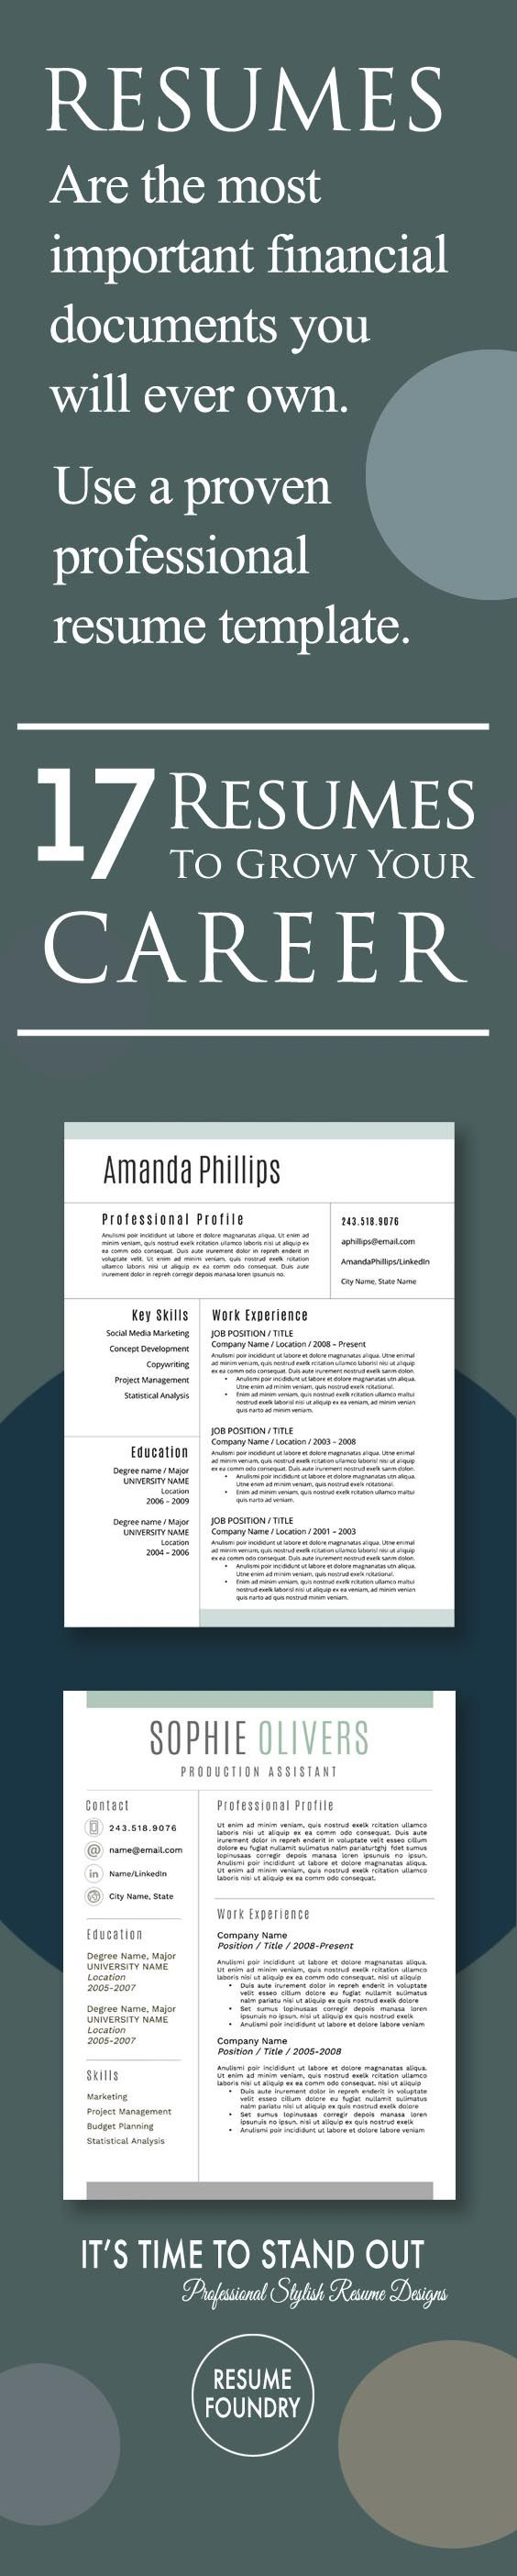 Use a proven professional resume template Contact